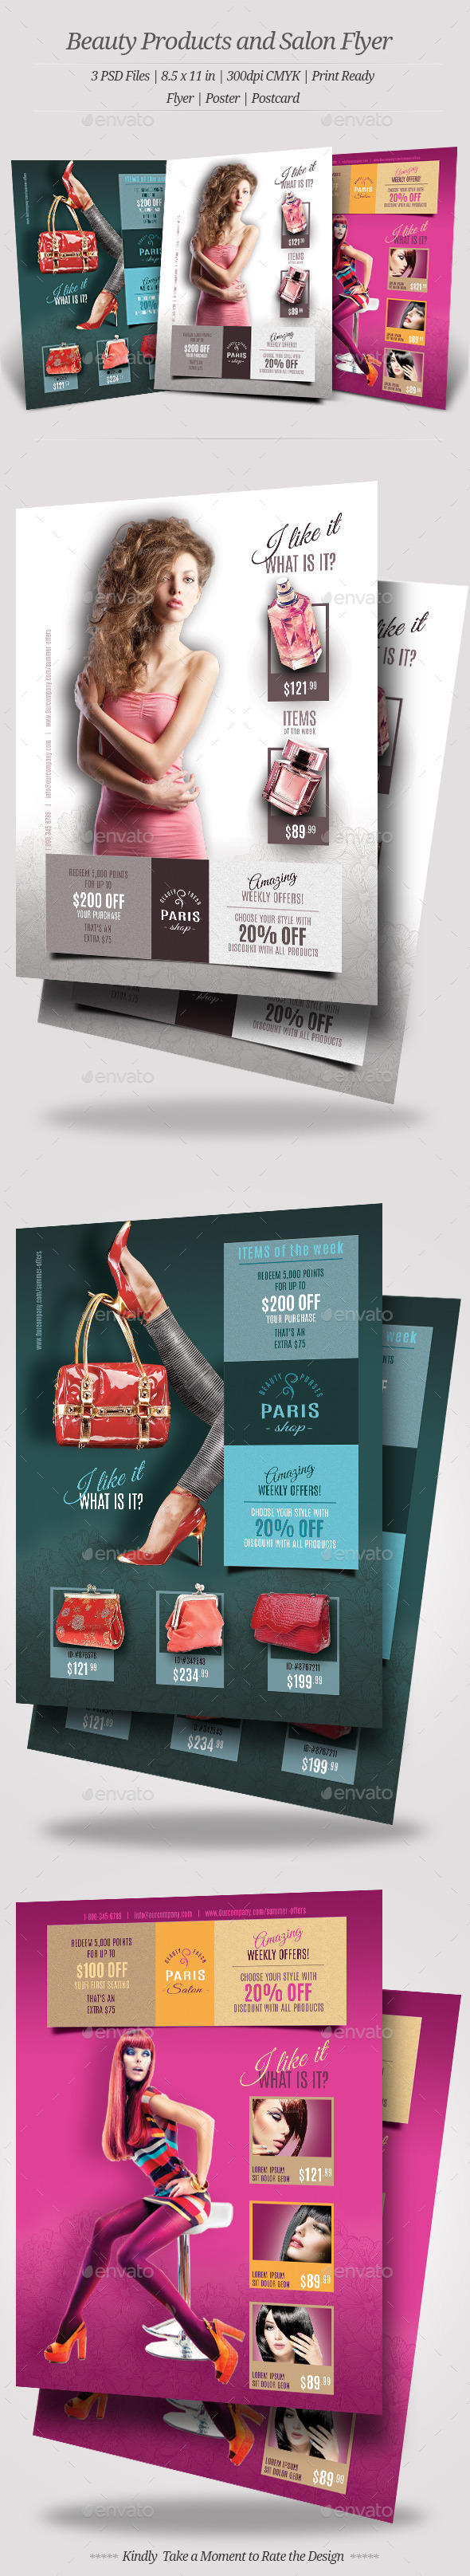 Beauty Products and Salon Flyers - Corporate Business Cards